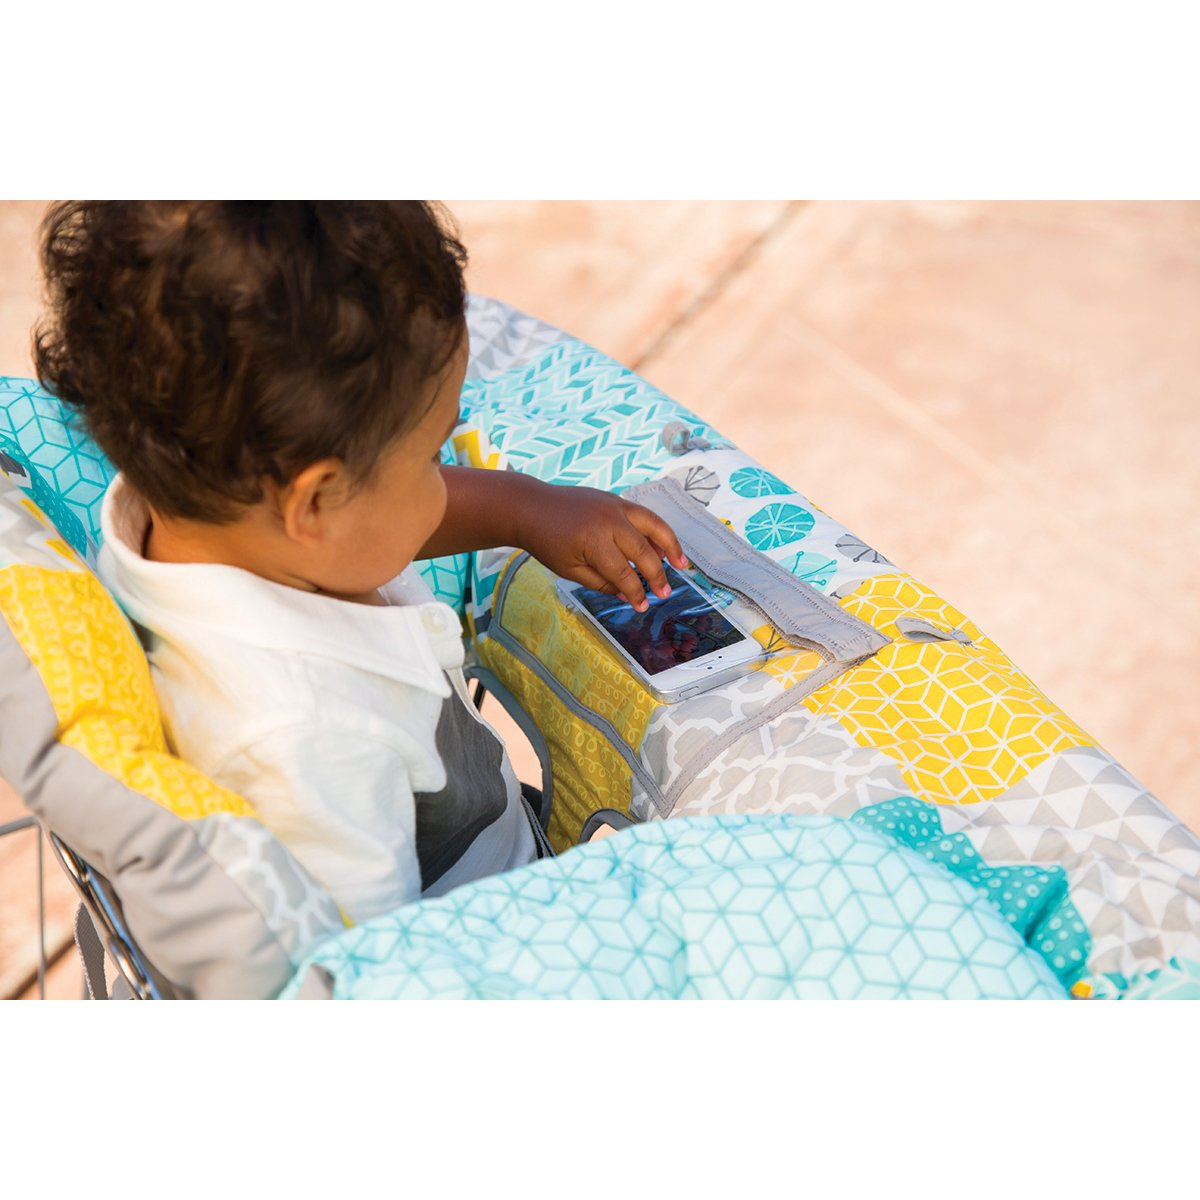 Infantino Unisex Baby Upright Travel Necessities Supportive Cart Cover, Teal by Infantino (Image #5)